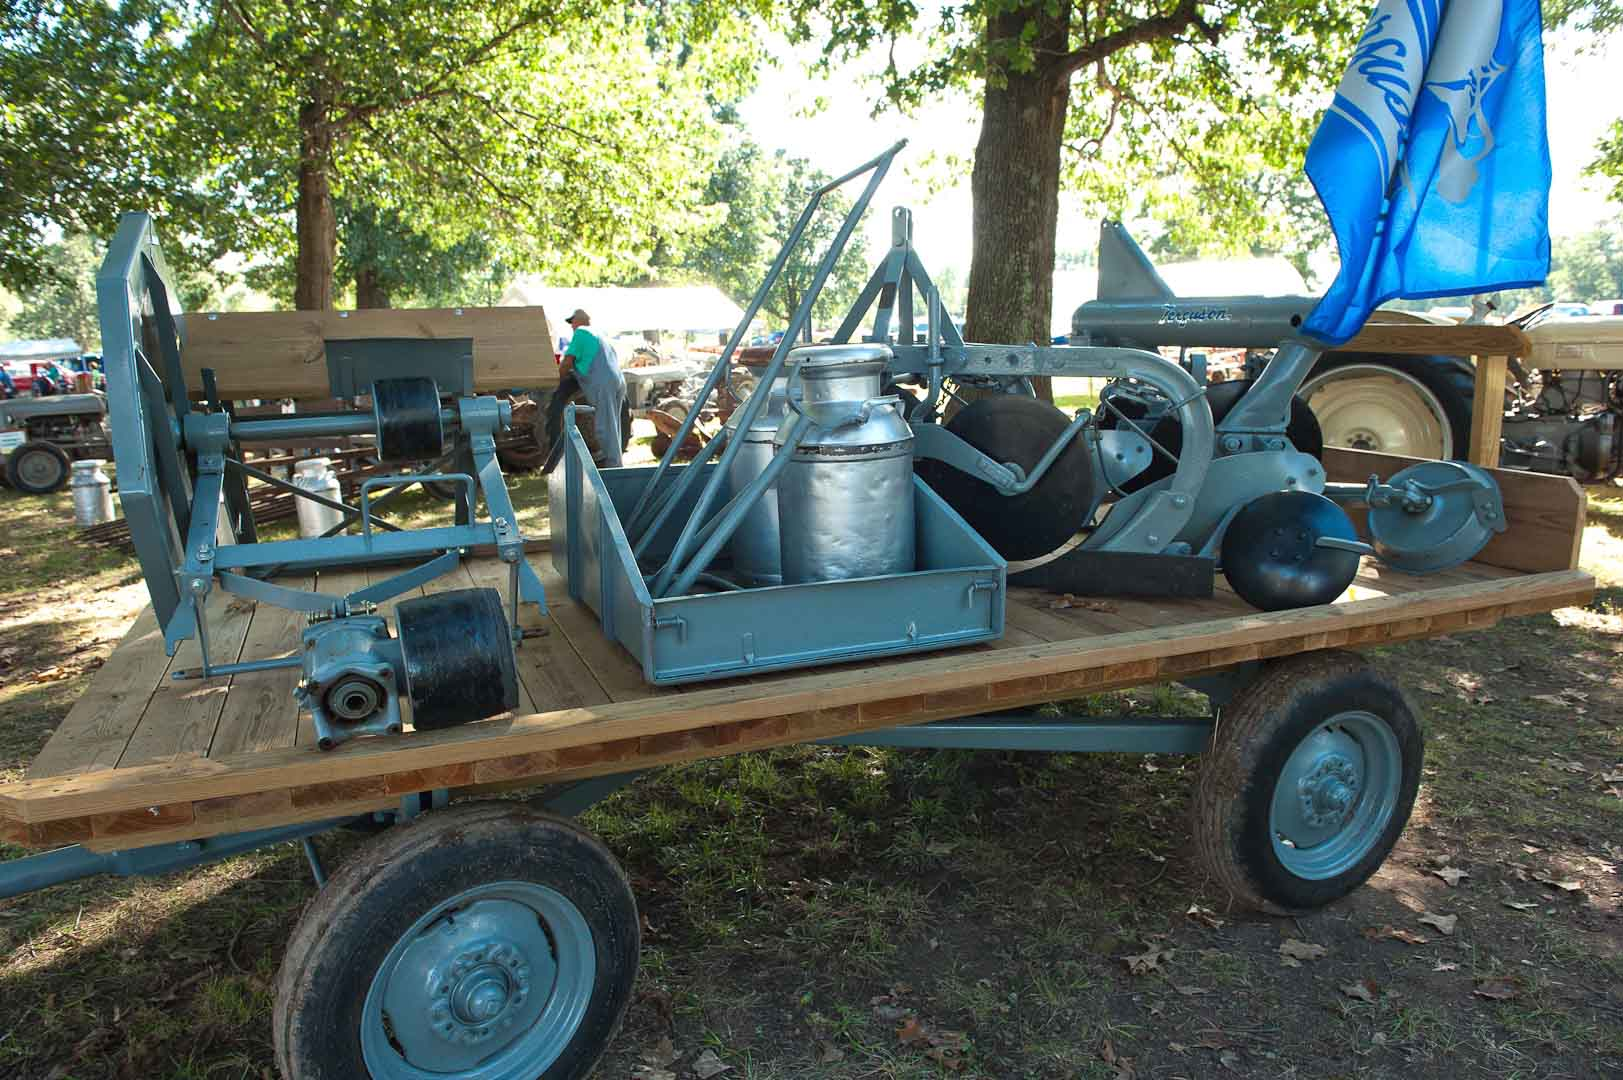 Sean Haskin's (Wasola, MO) trailer of implements.